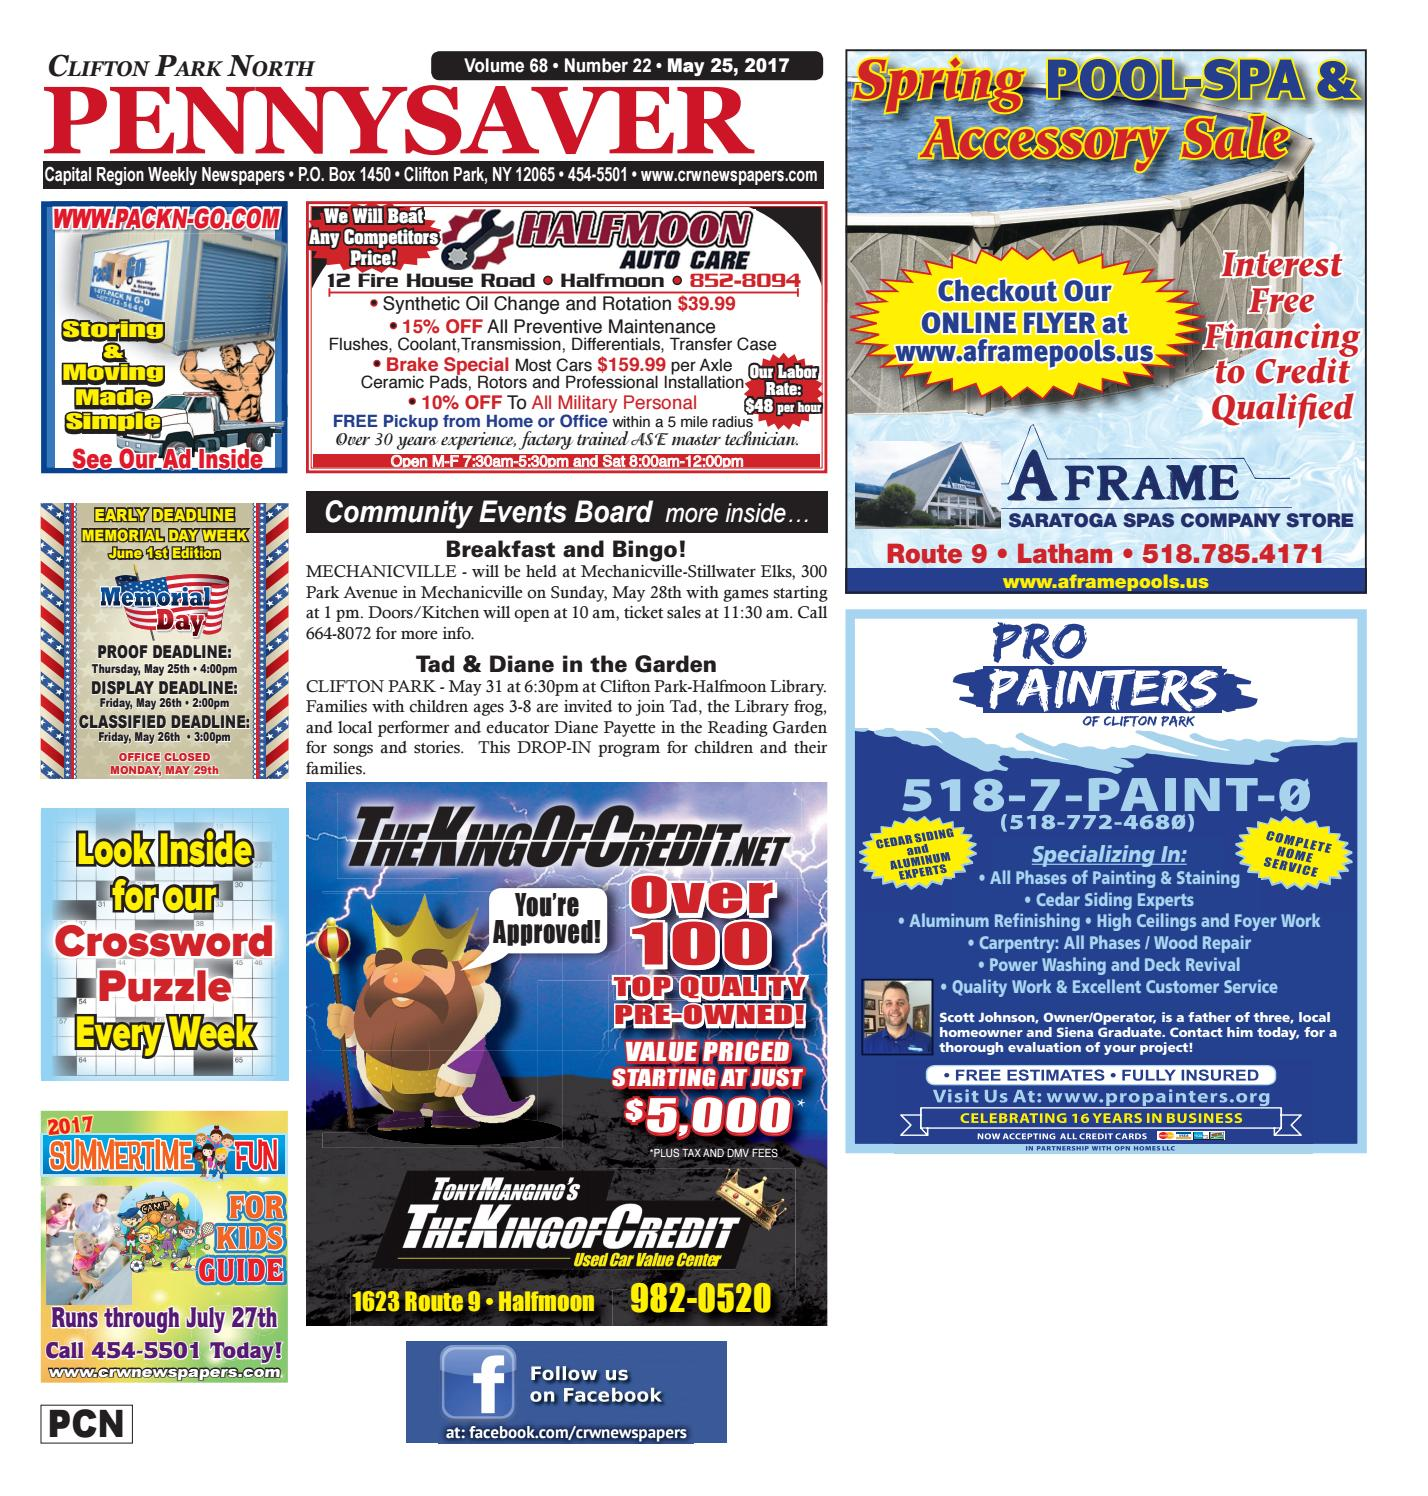 Clifton Park North Pennysaver 052517 By Capital Region Weekly Newspapers Issuu